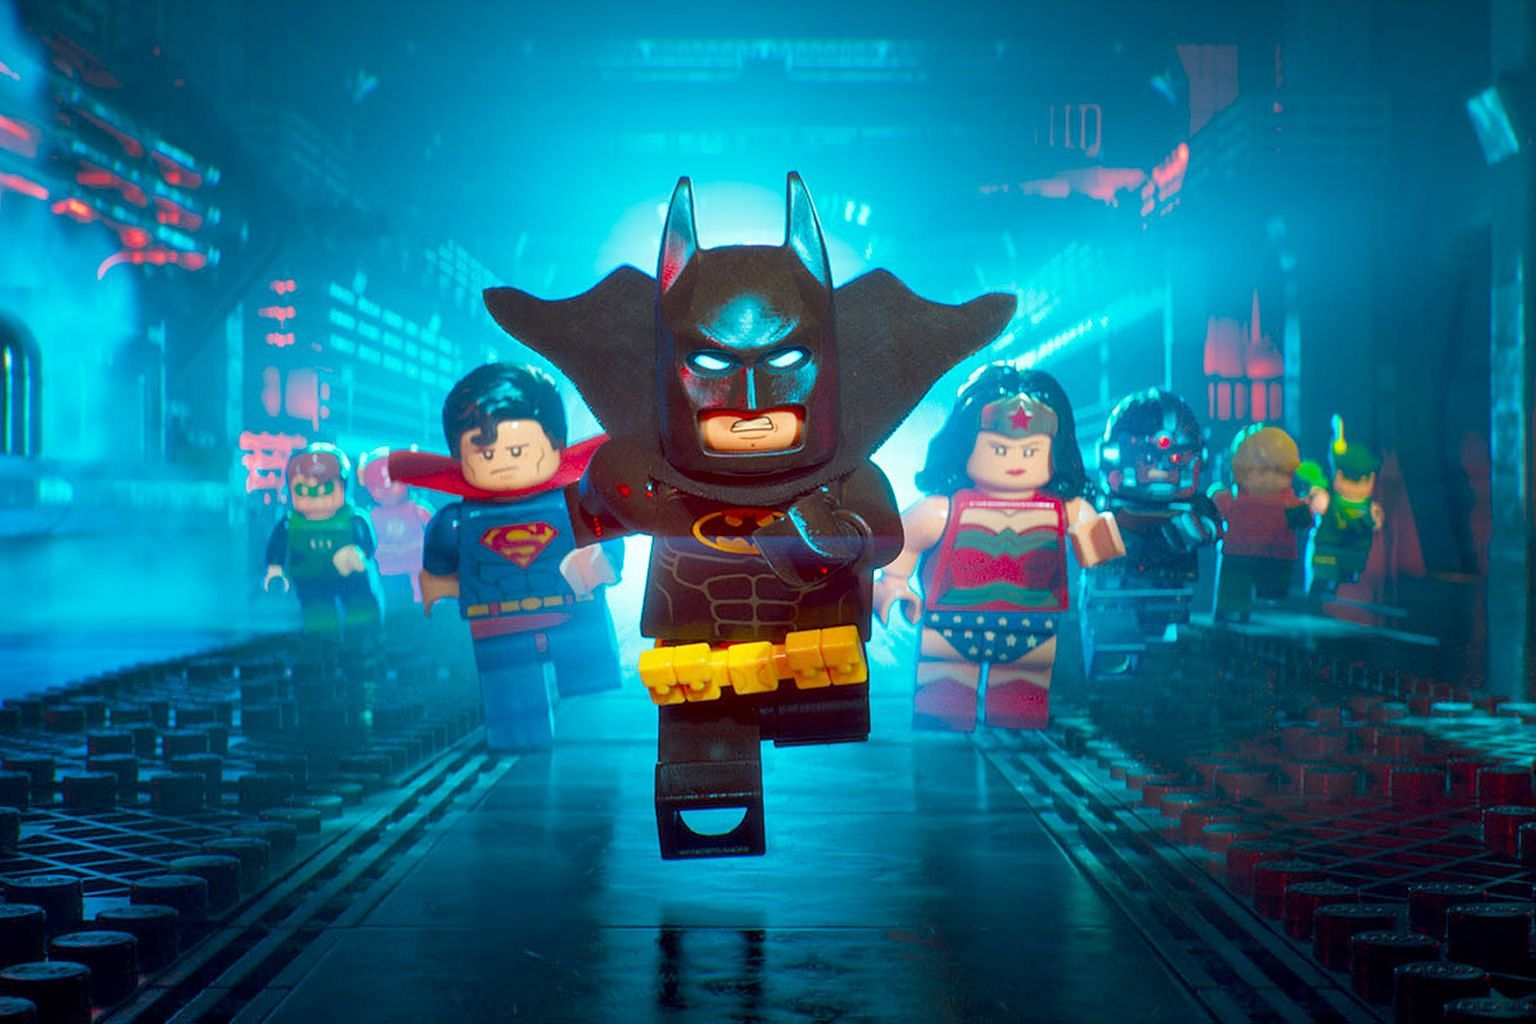 The Lego Batman Movie shows Gotham's hero being plunged into an existential crisis when Joker unexpectedly surrenders to the police. Zach Galifianakis (left) voices Joker and Will Arnett voices Batman in The Lego Batman Movie.